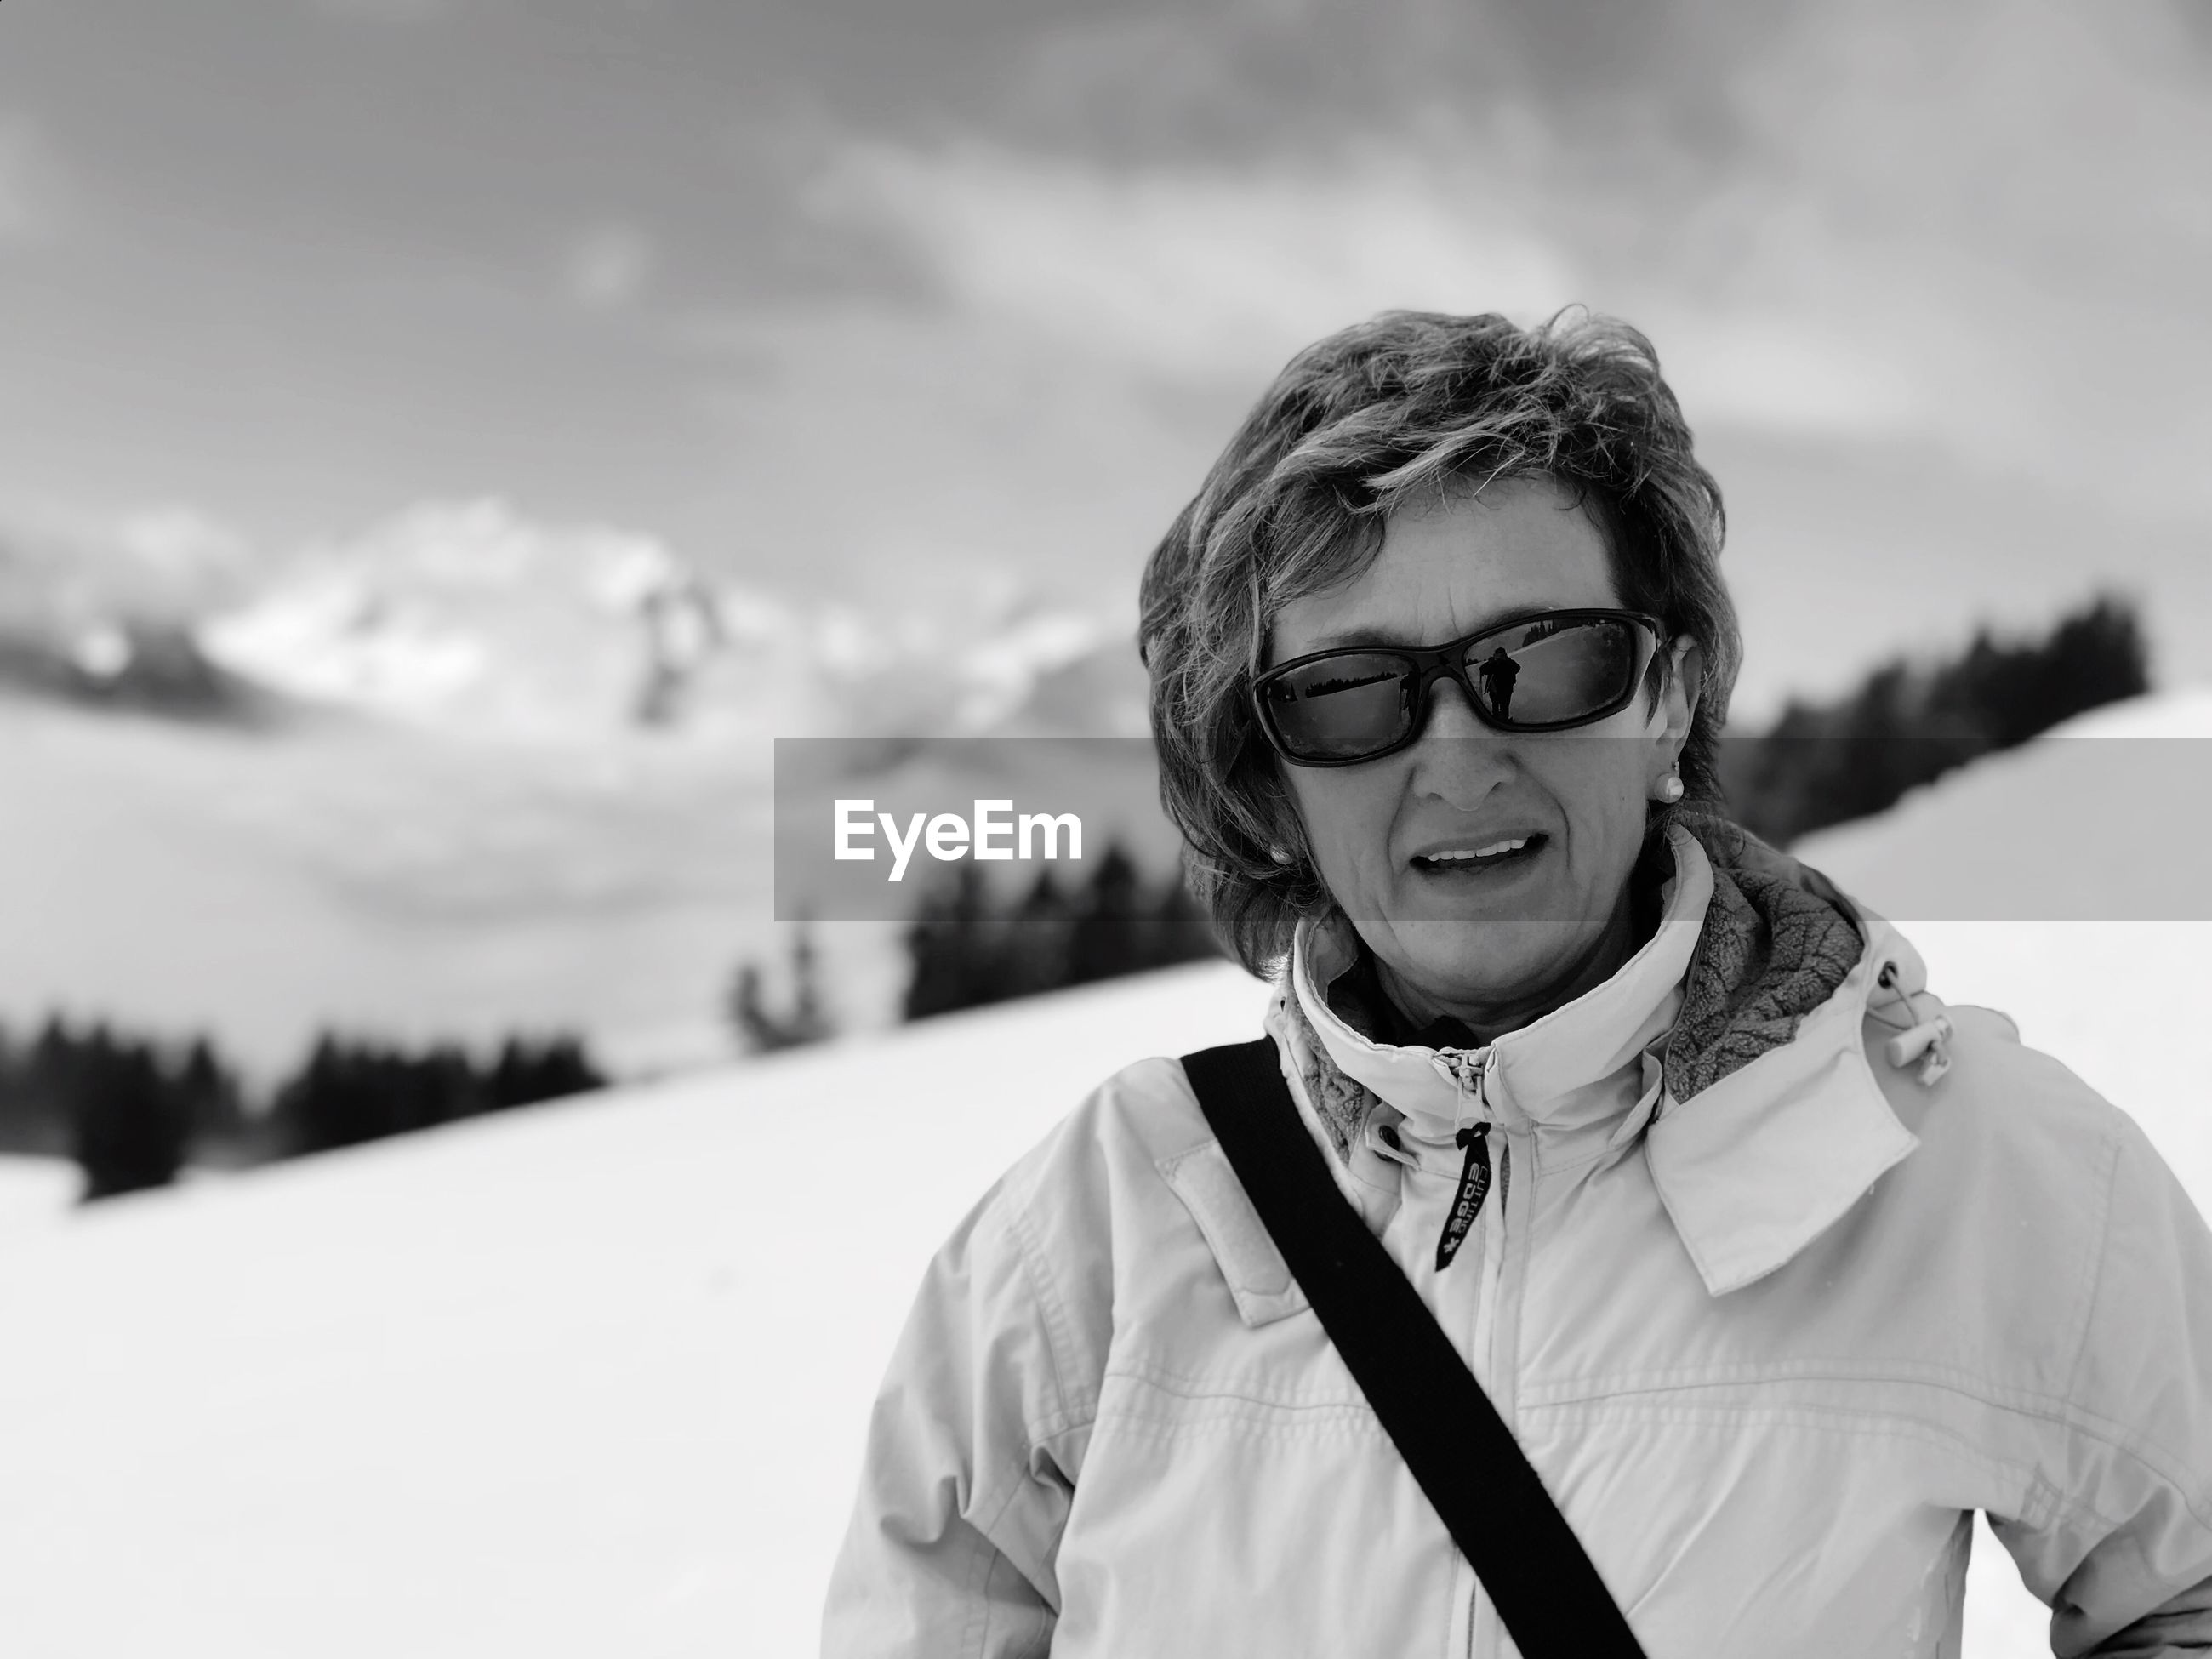 portrait, one person, smiling, winter, front view, leisure activity, happiness, real people, lifestyles, looking at camera, snow, cold temperature, clothing, glasses, focus on foreground, warm clothing, day, outdoors